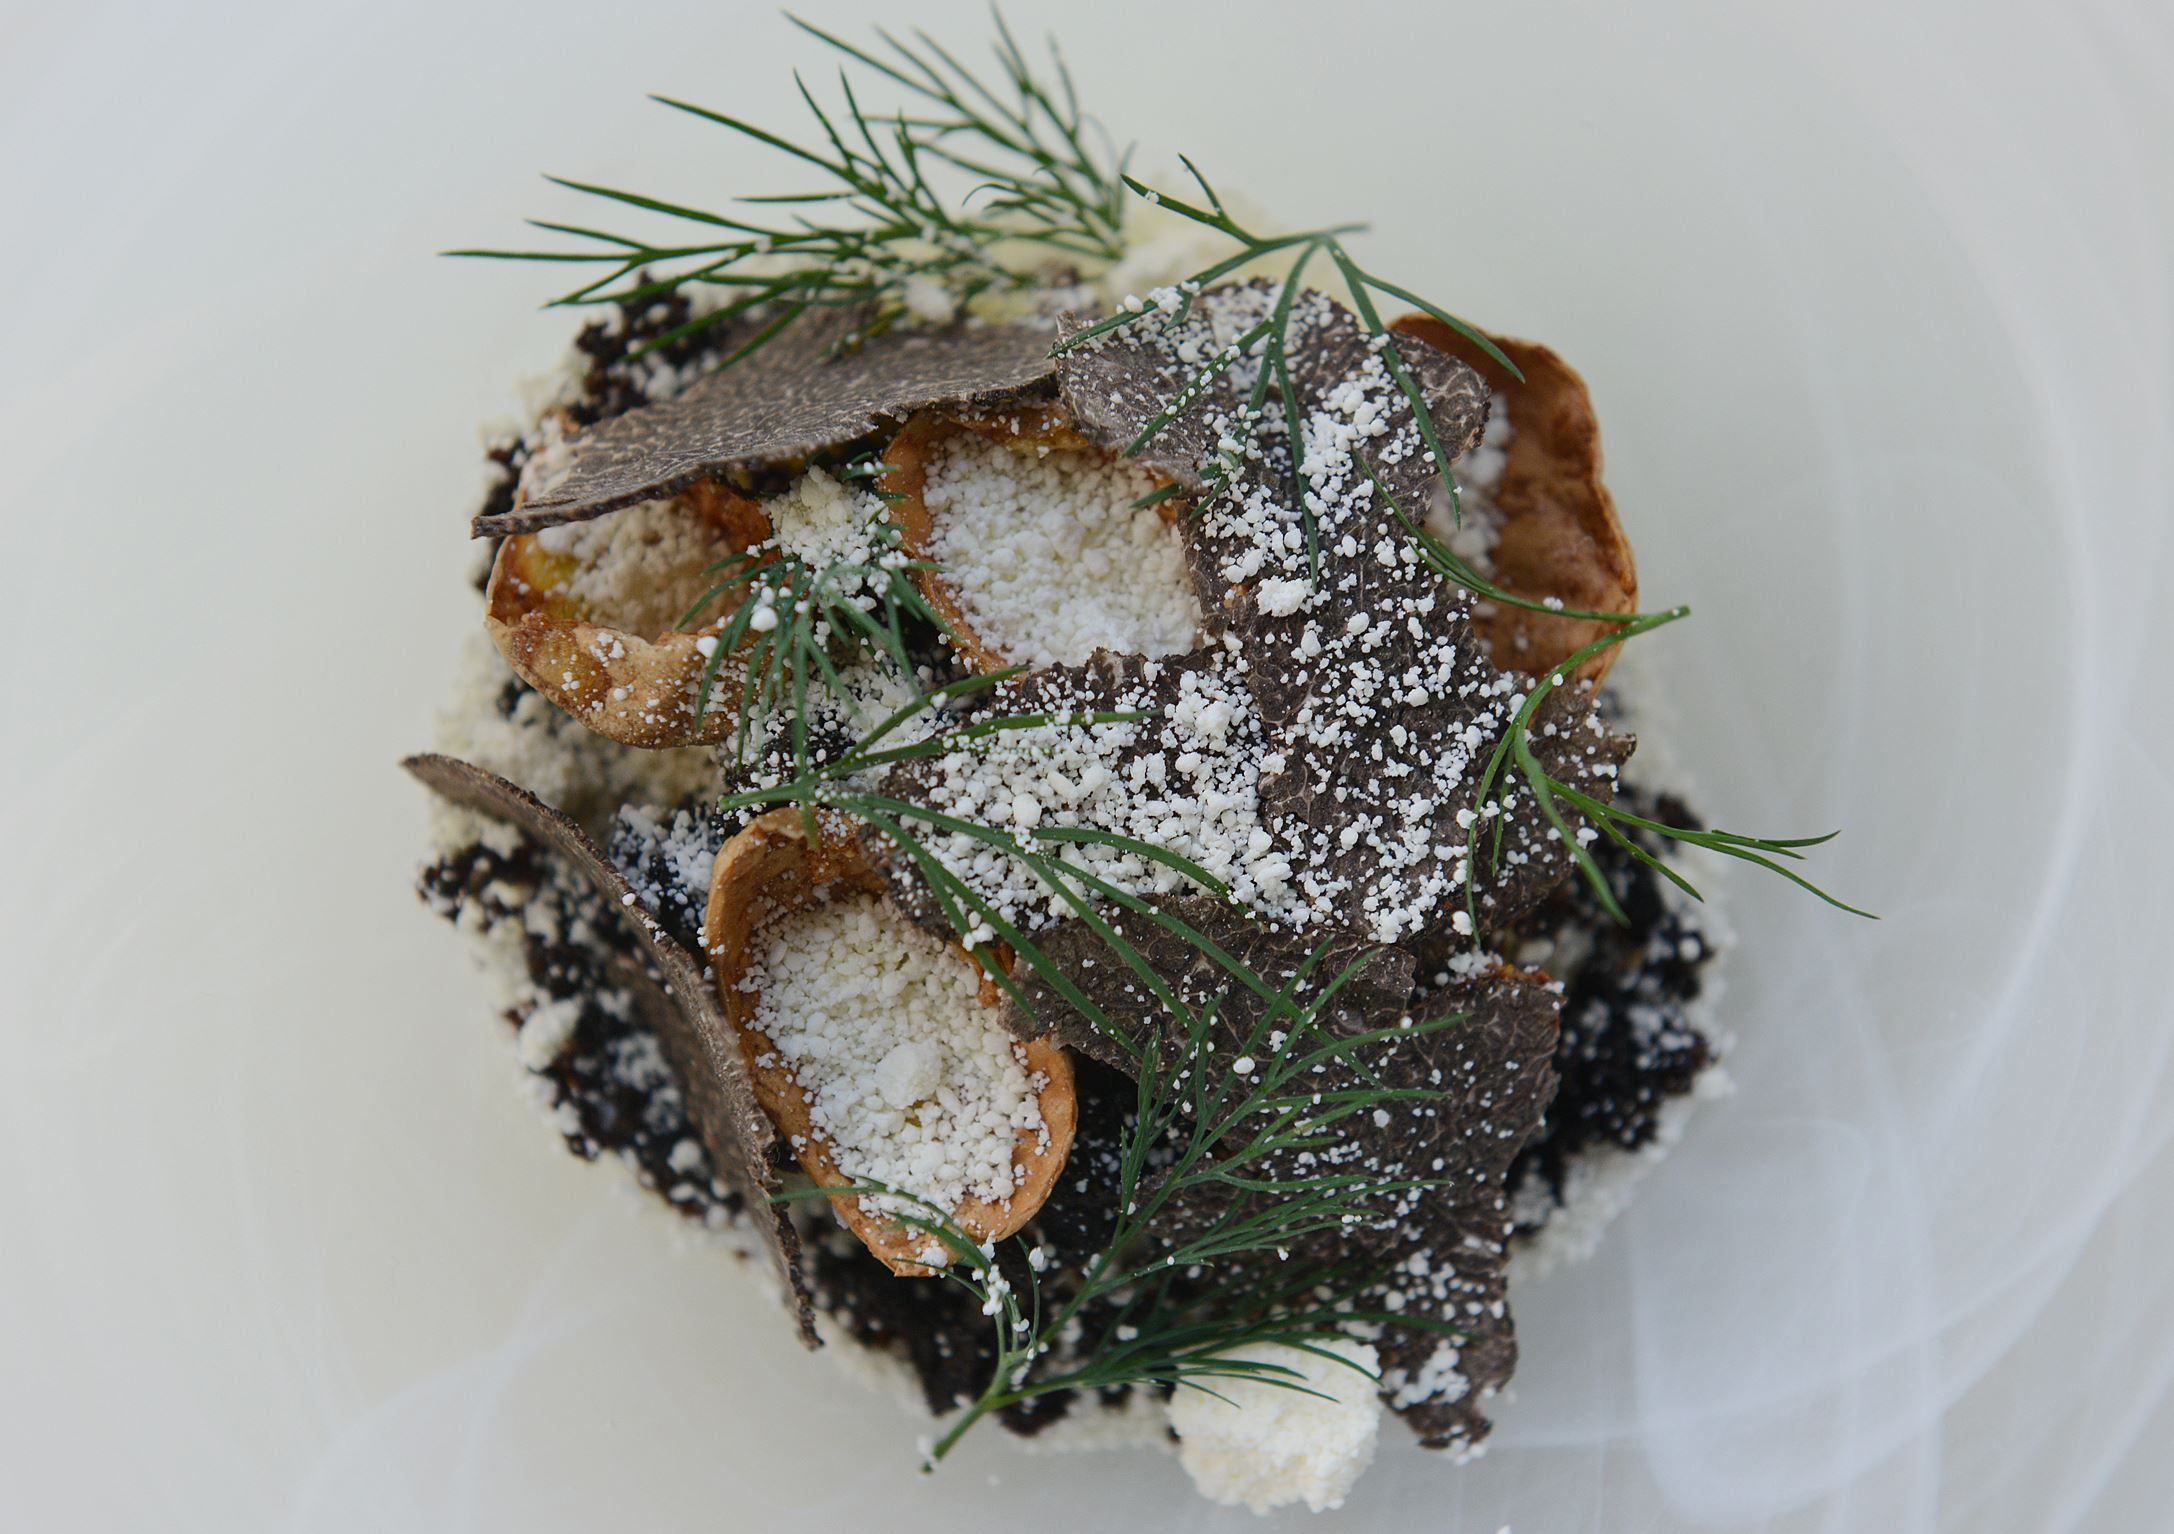 20140306jrdine7-1 Potatoes in olive oil with black truffles and dill garnish at Notion in East Liberty.